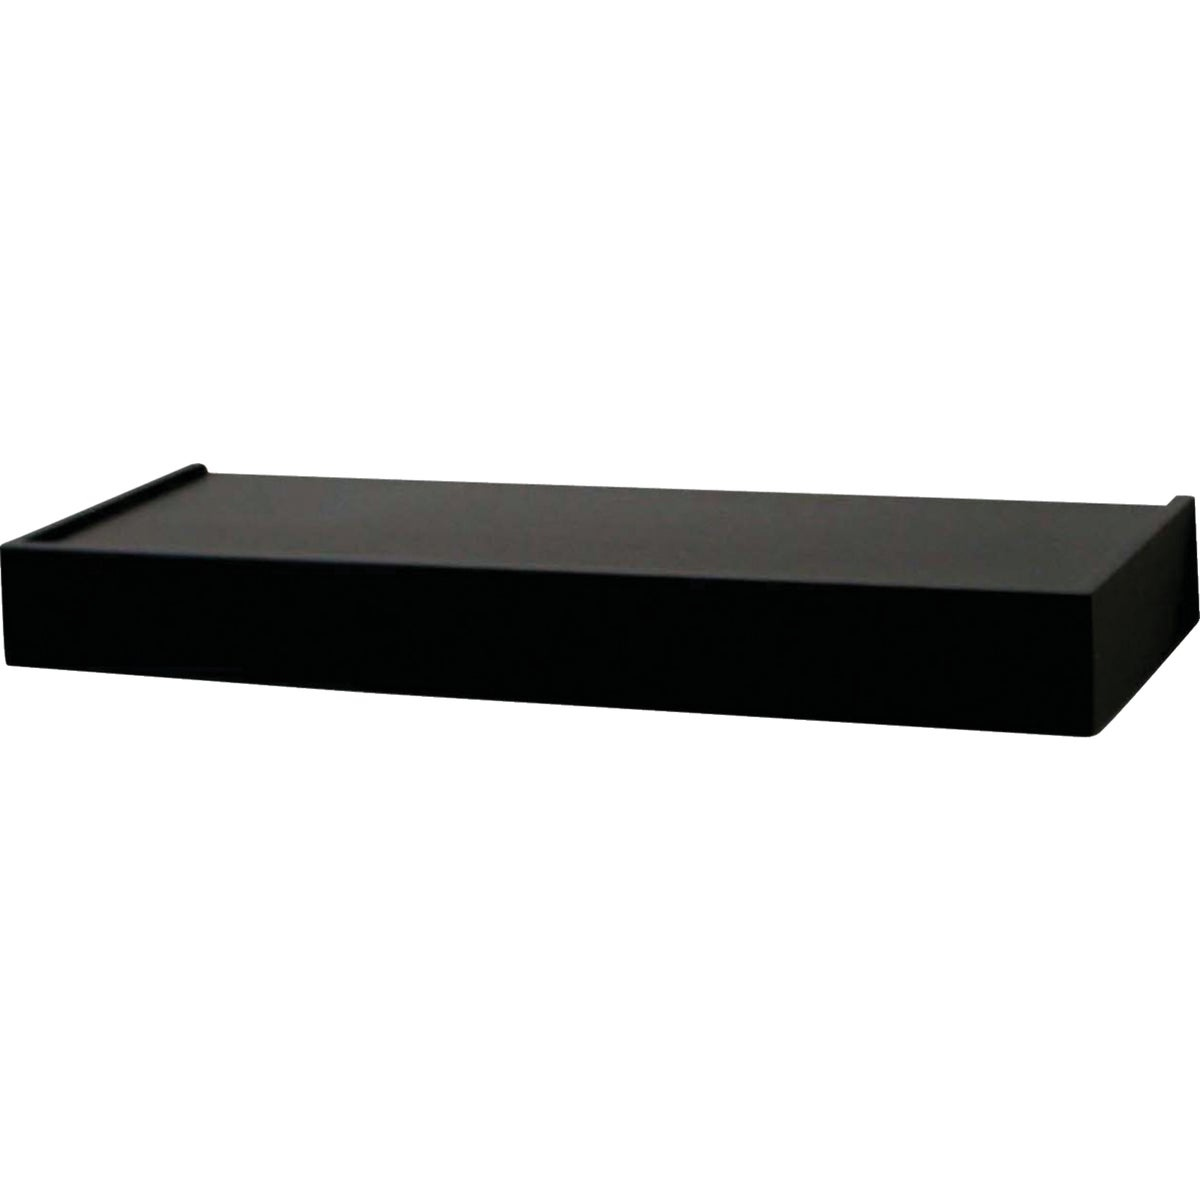 "24"" BLACK FLOATING SHELF - 0140-24BK by Knape & Vogt Mfg Co"